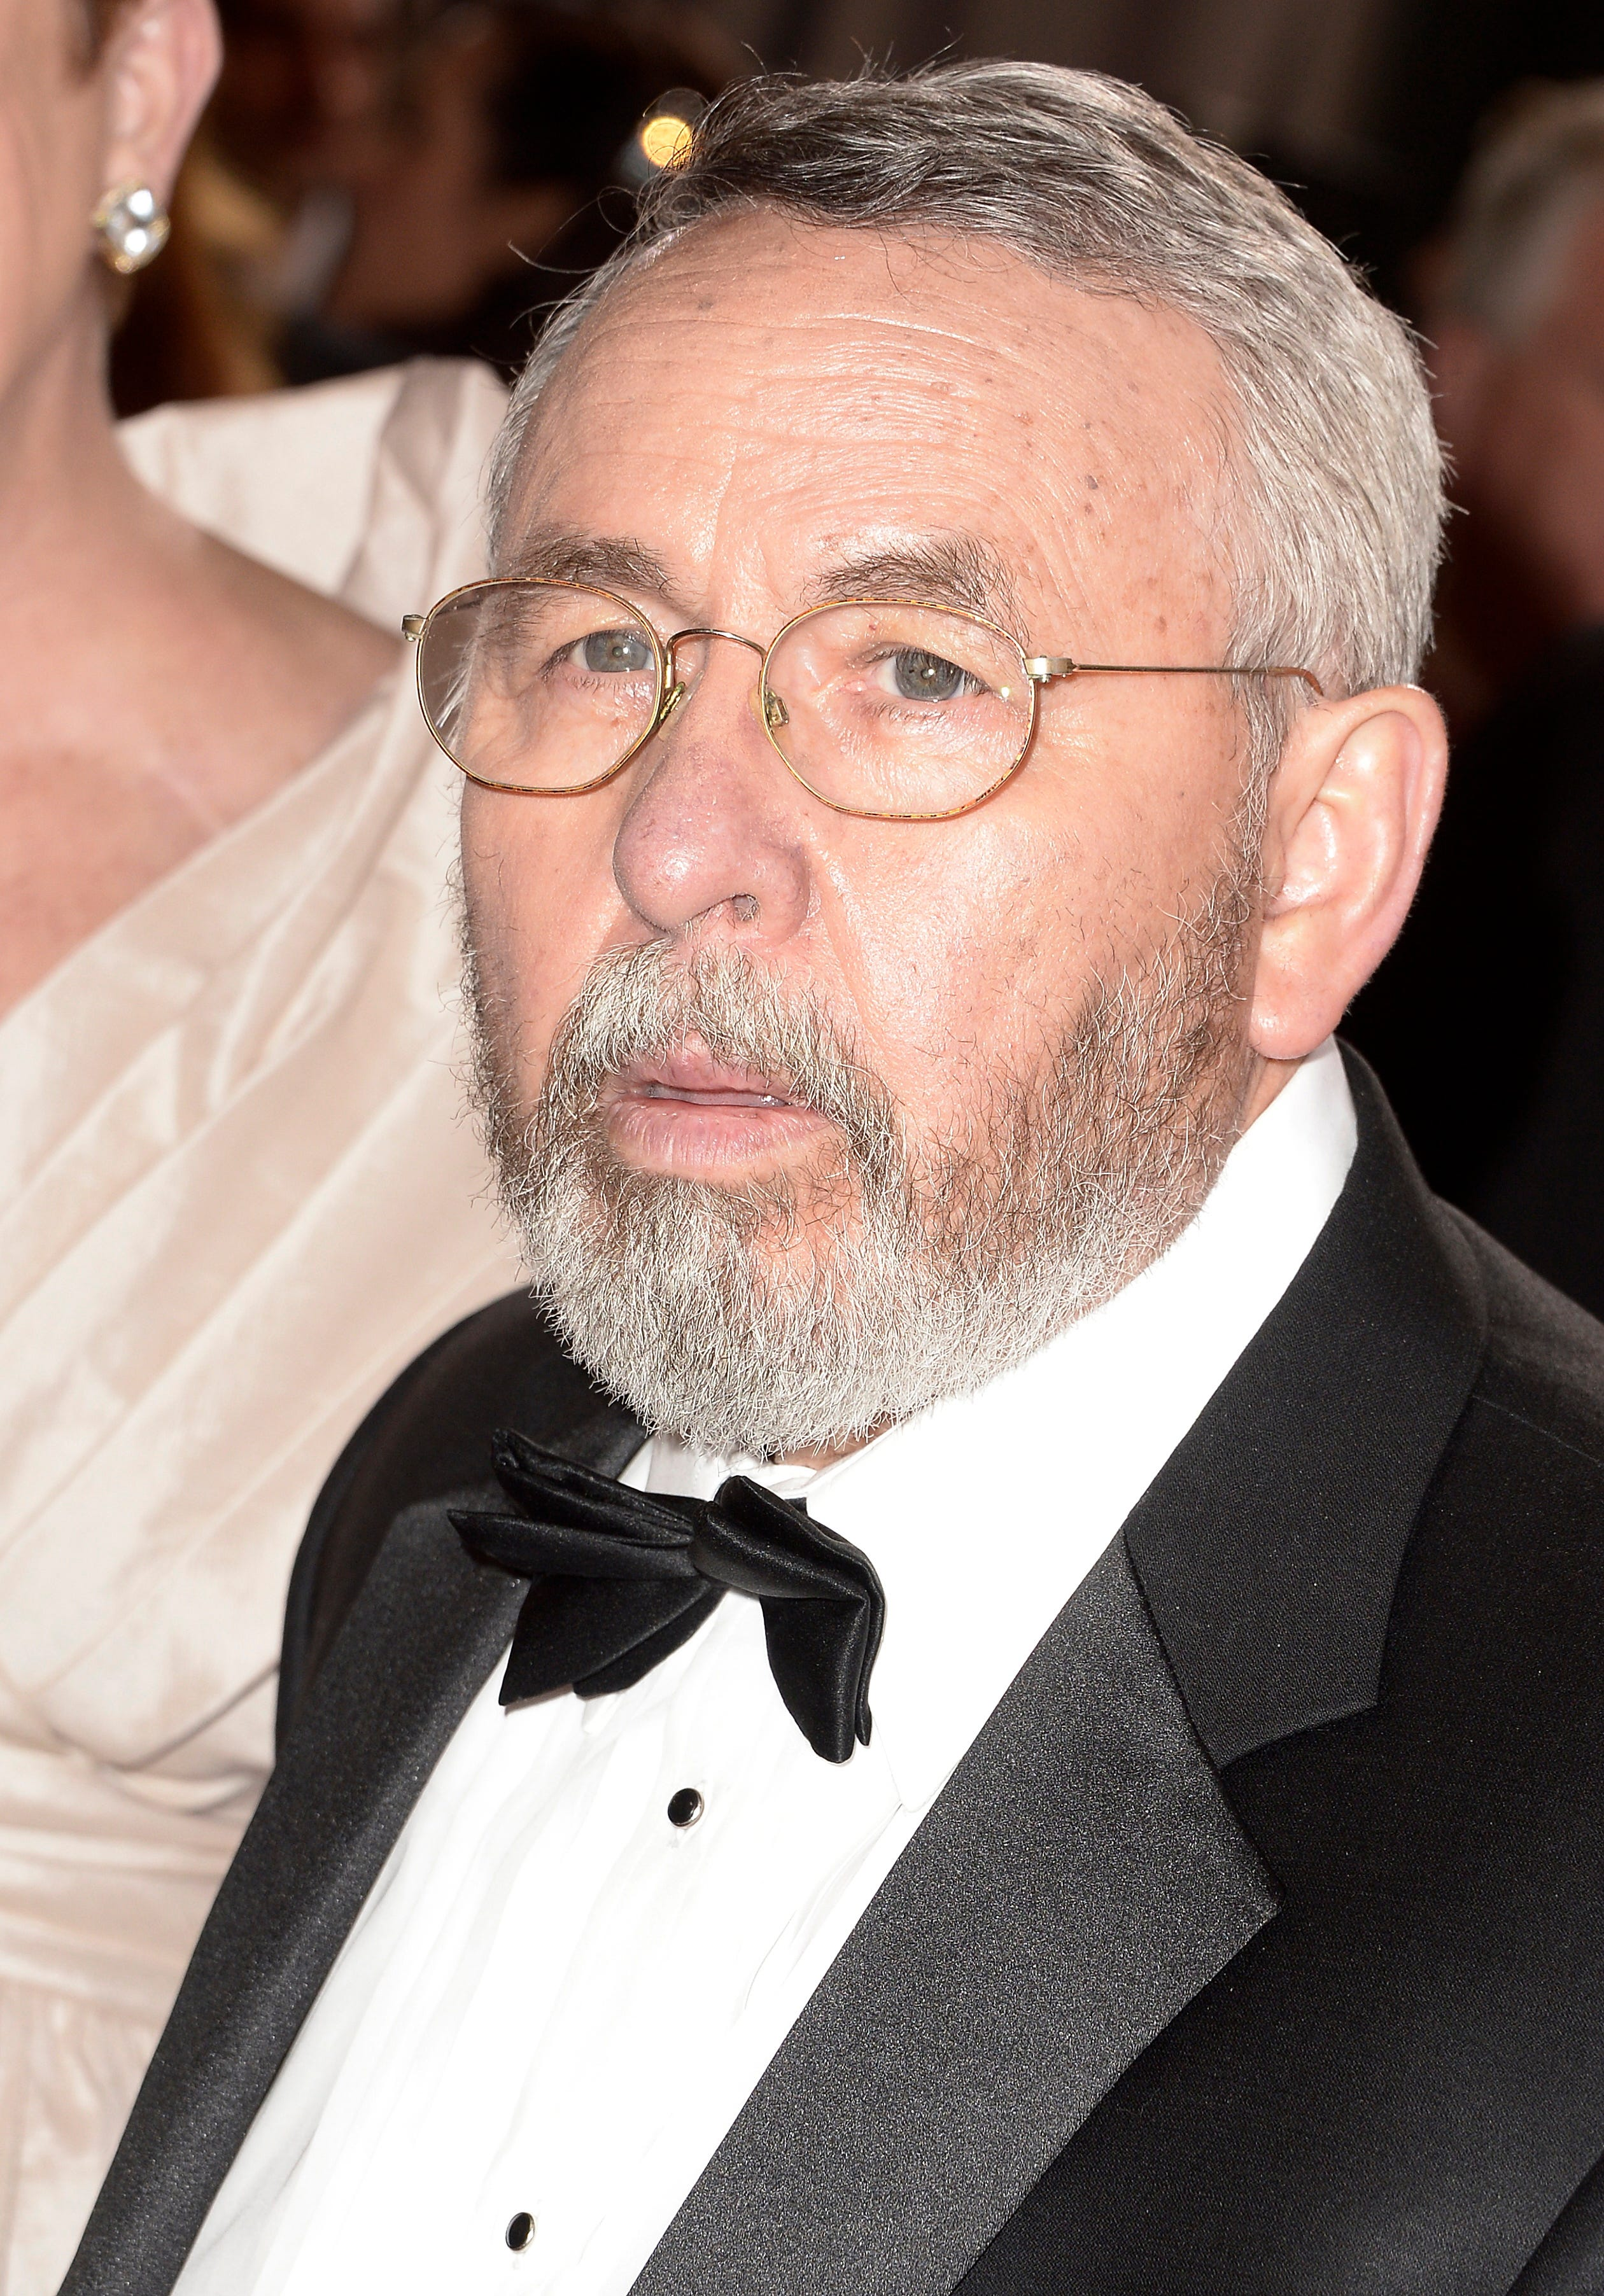 Ex-CIA officer played by Ben Affleck in Oscar best-picture winner 'Argo' dies at 78